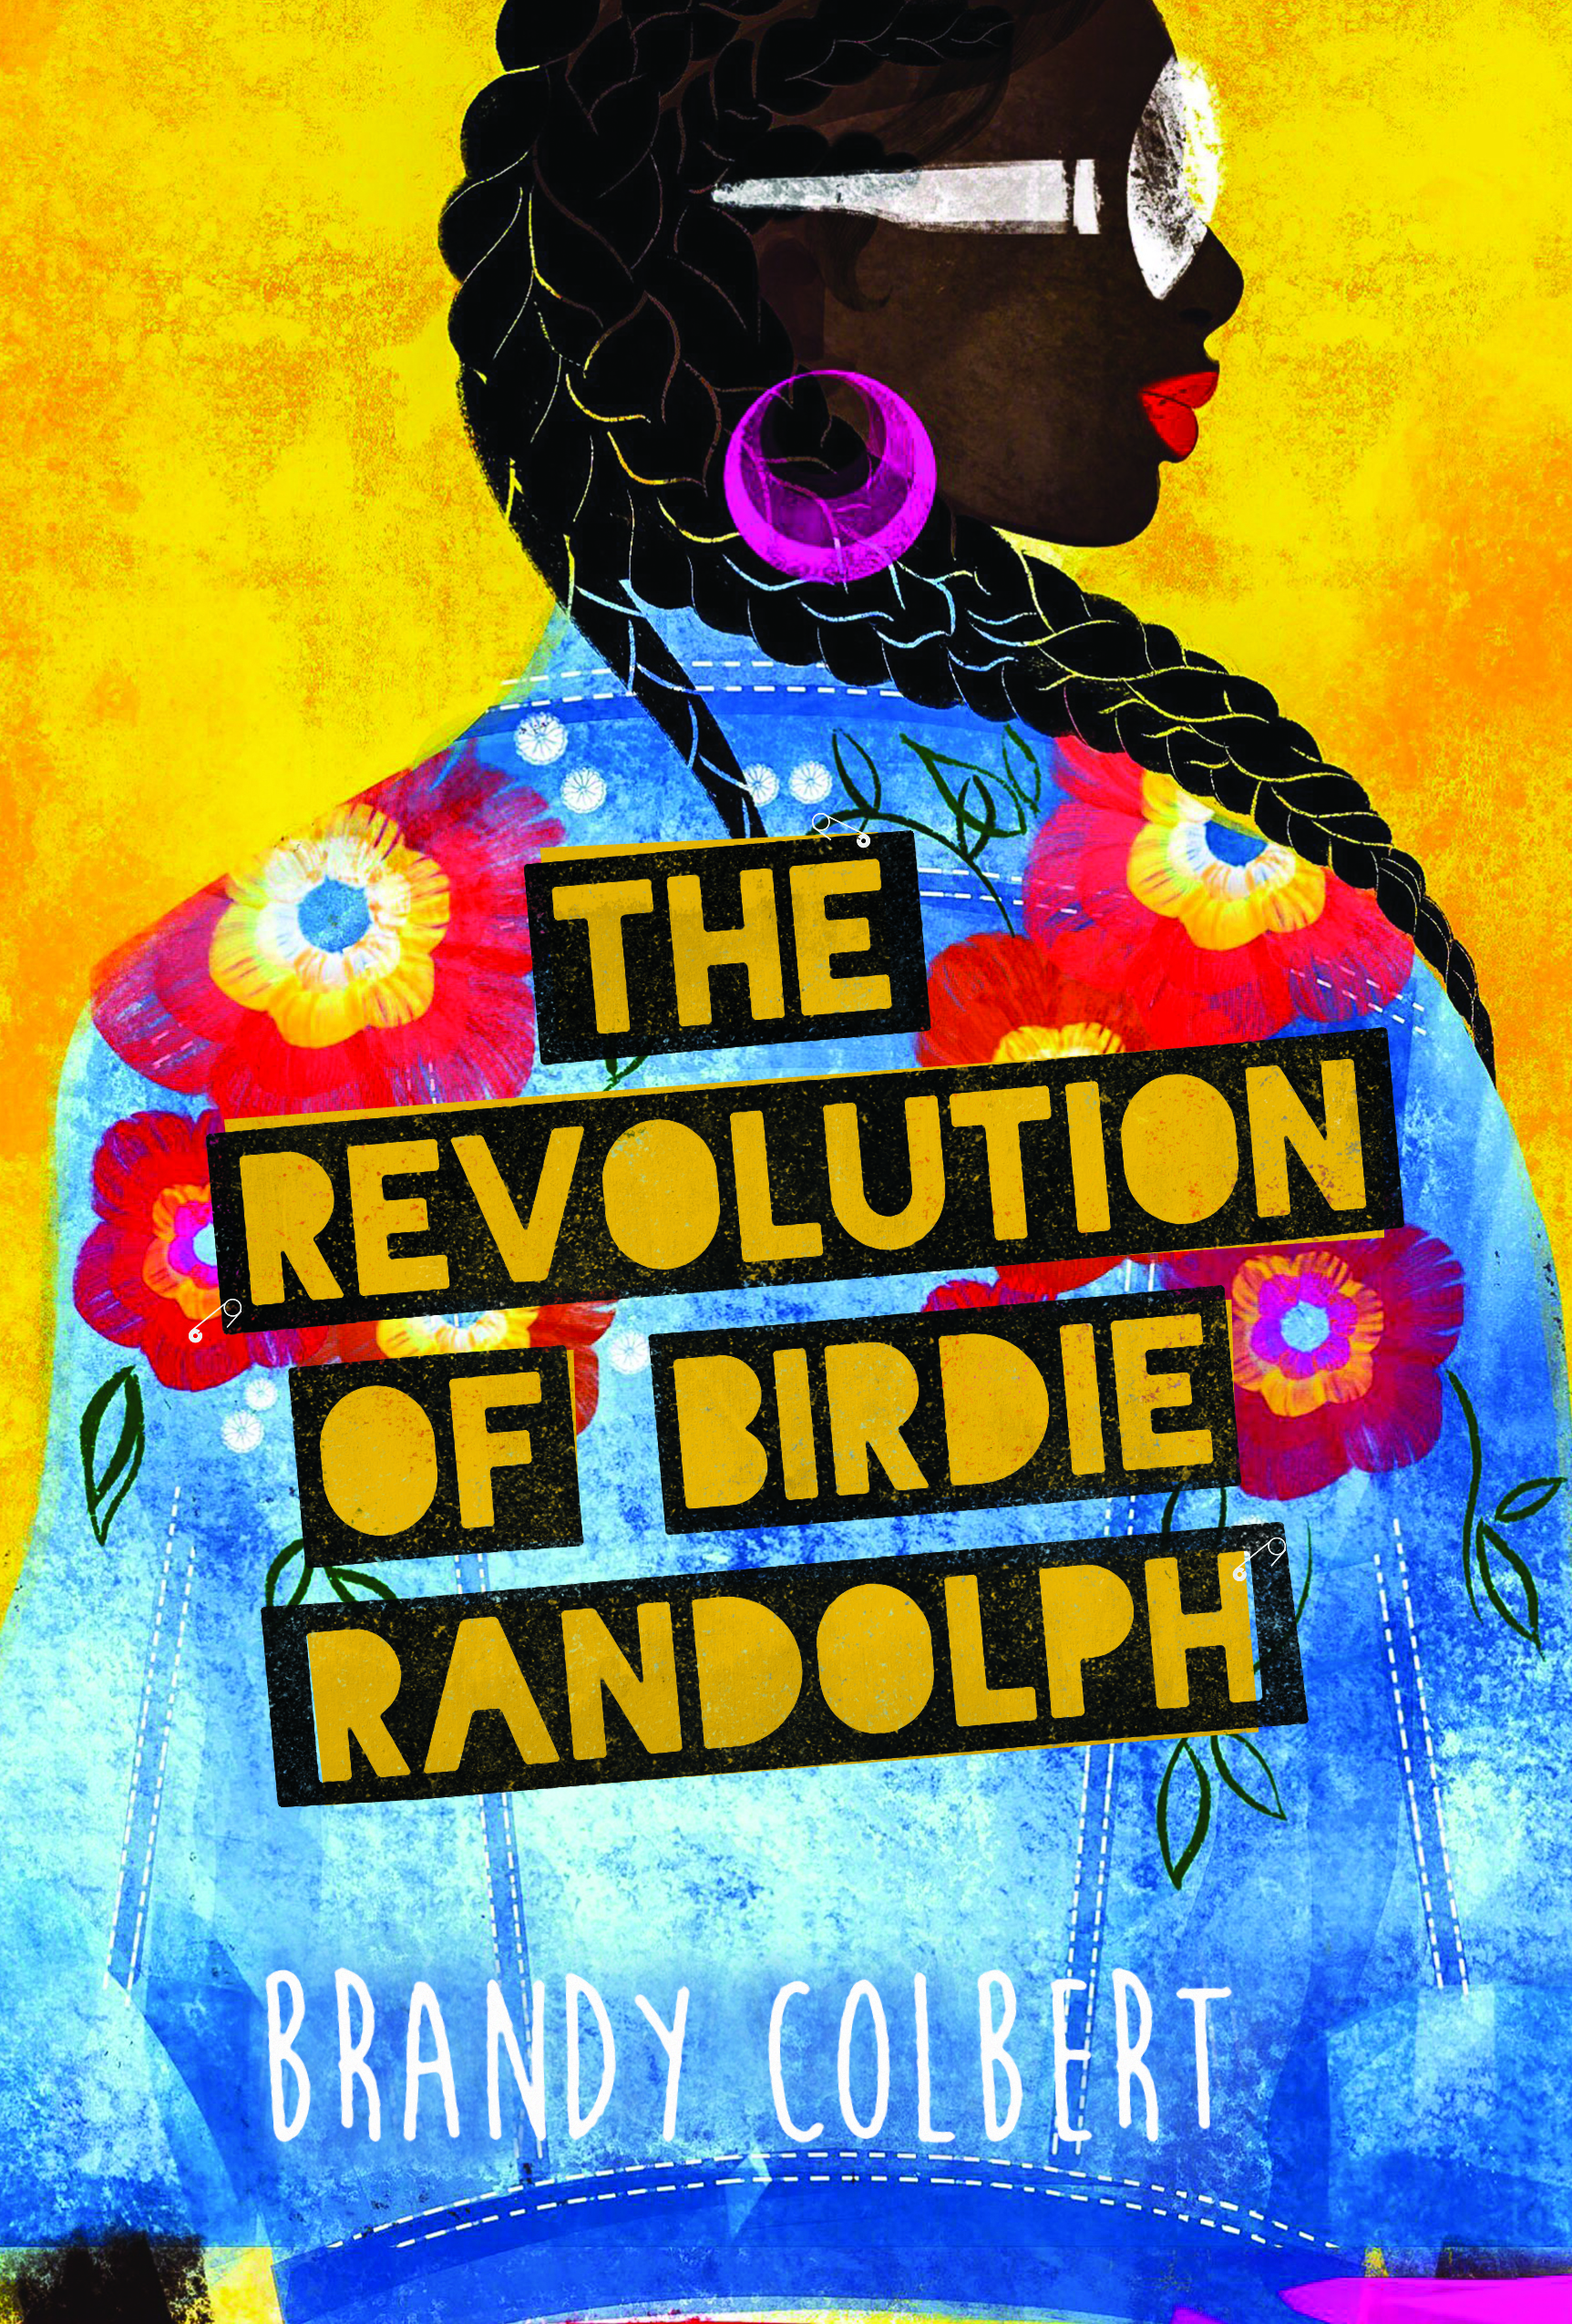 The Revolution of Birdie Randolph.jpg